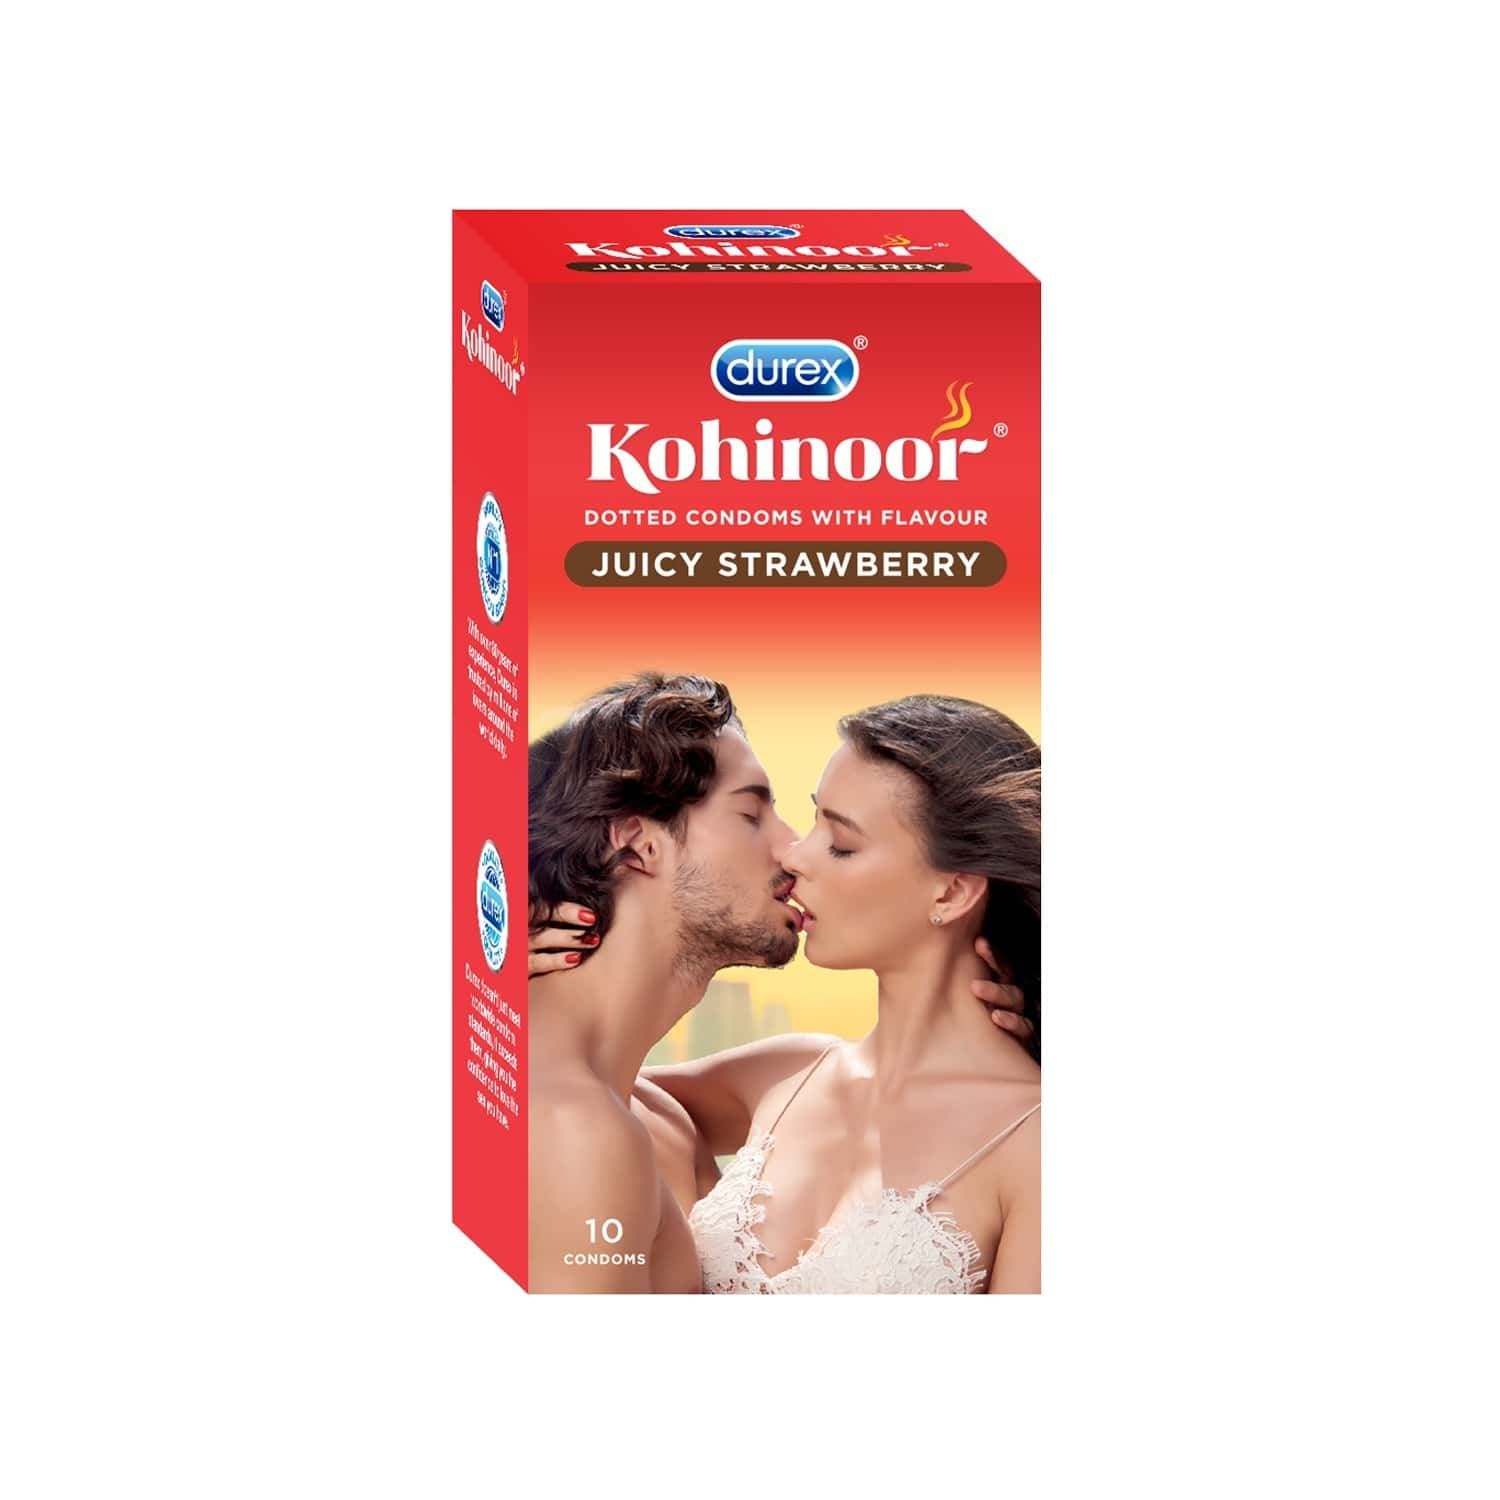 Durex Kohinoor Juicy Strawberry Packet Of 10 Condoms